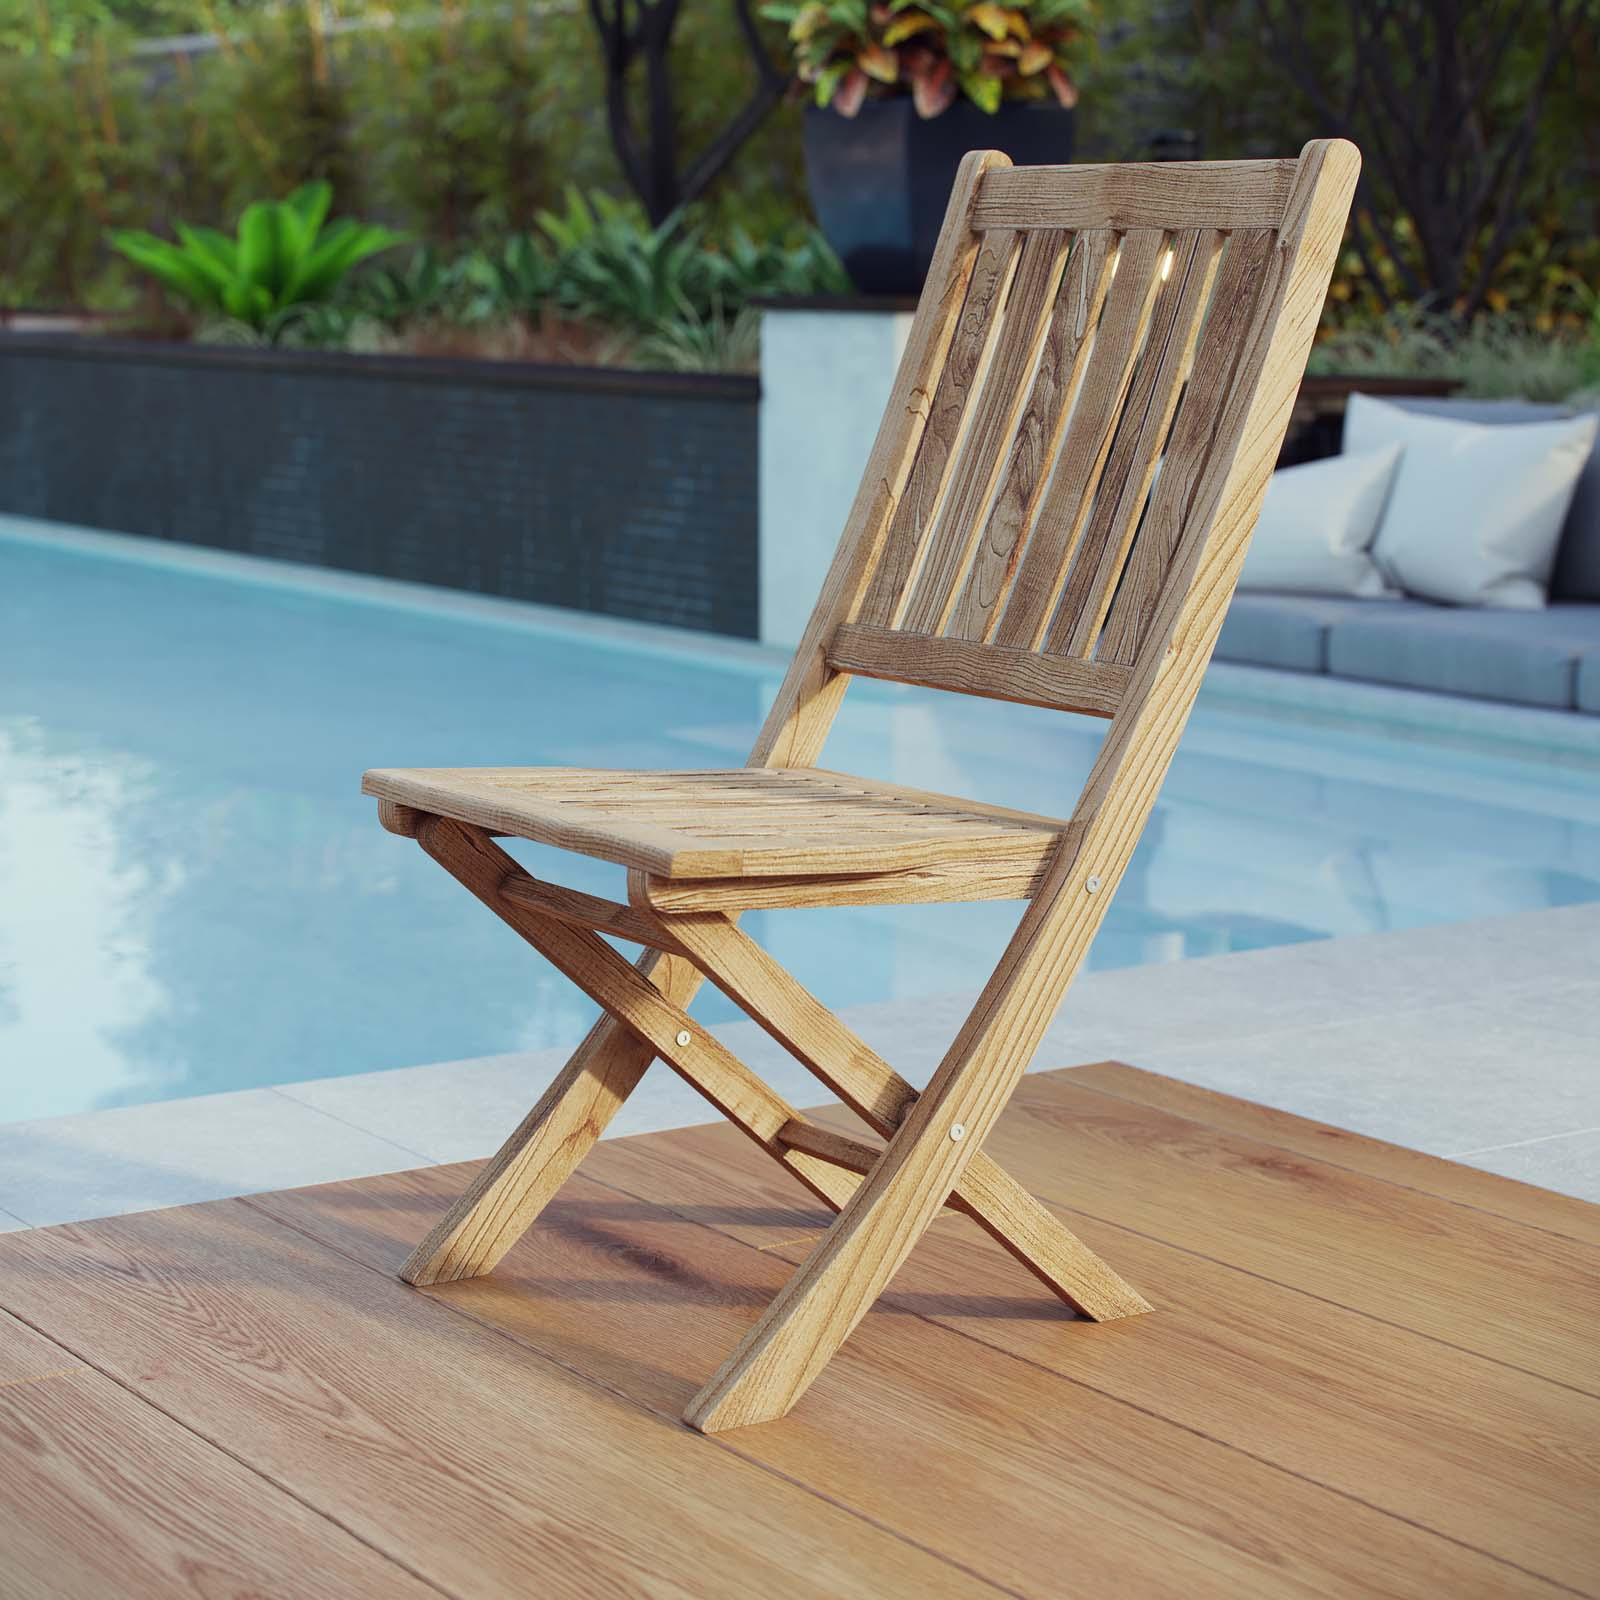 Modway Marina Outdoor Patio Teak Folding Side Chair in Natural